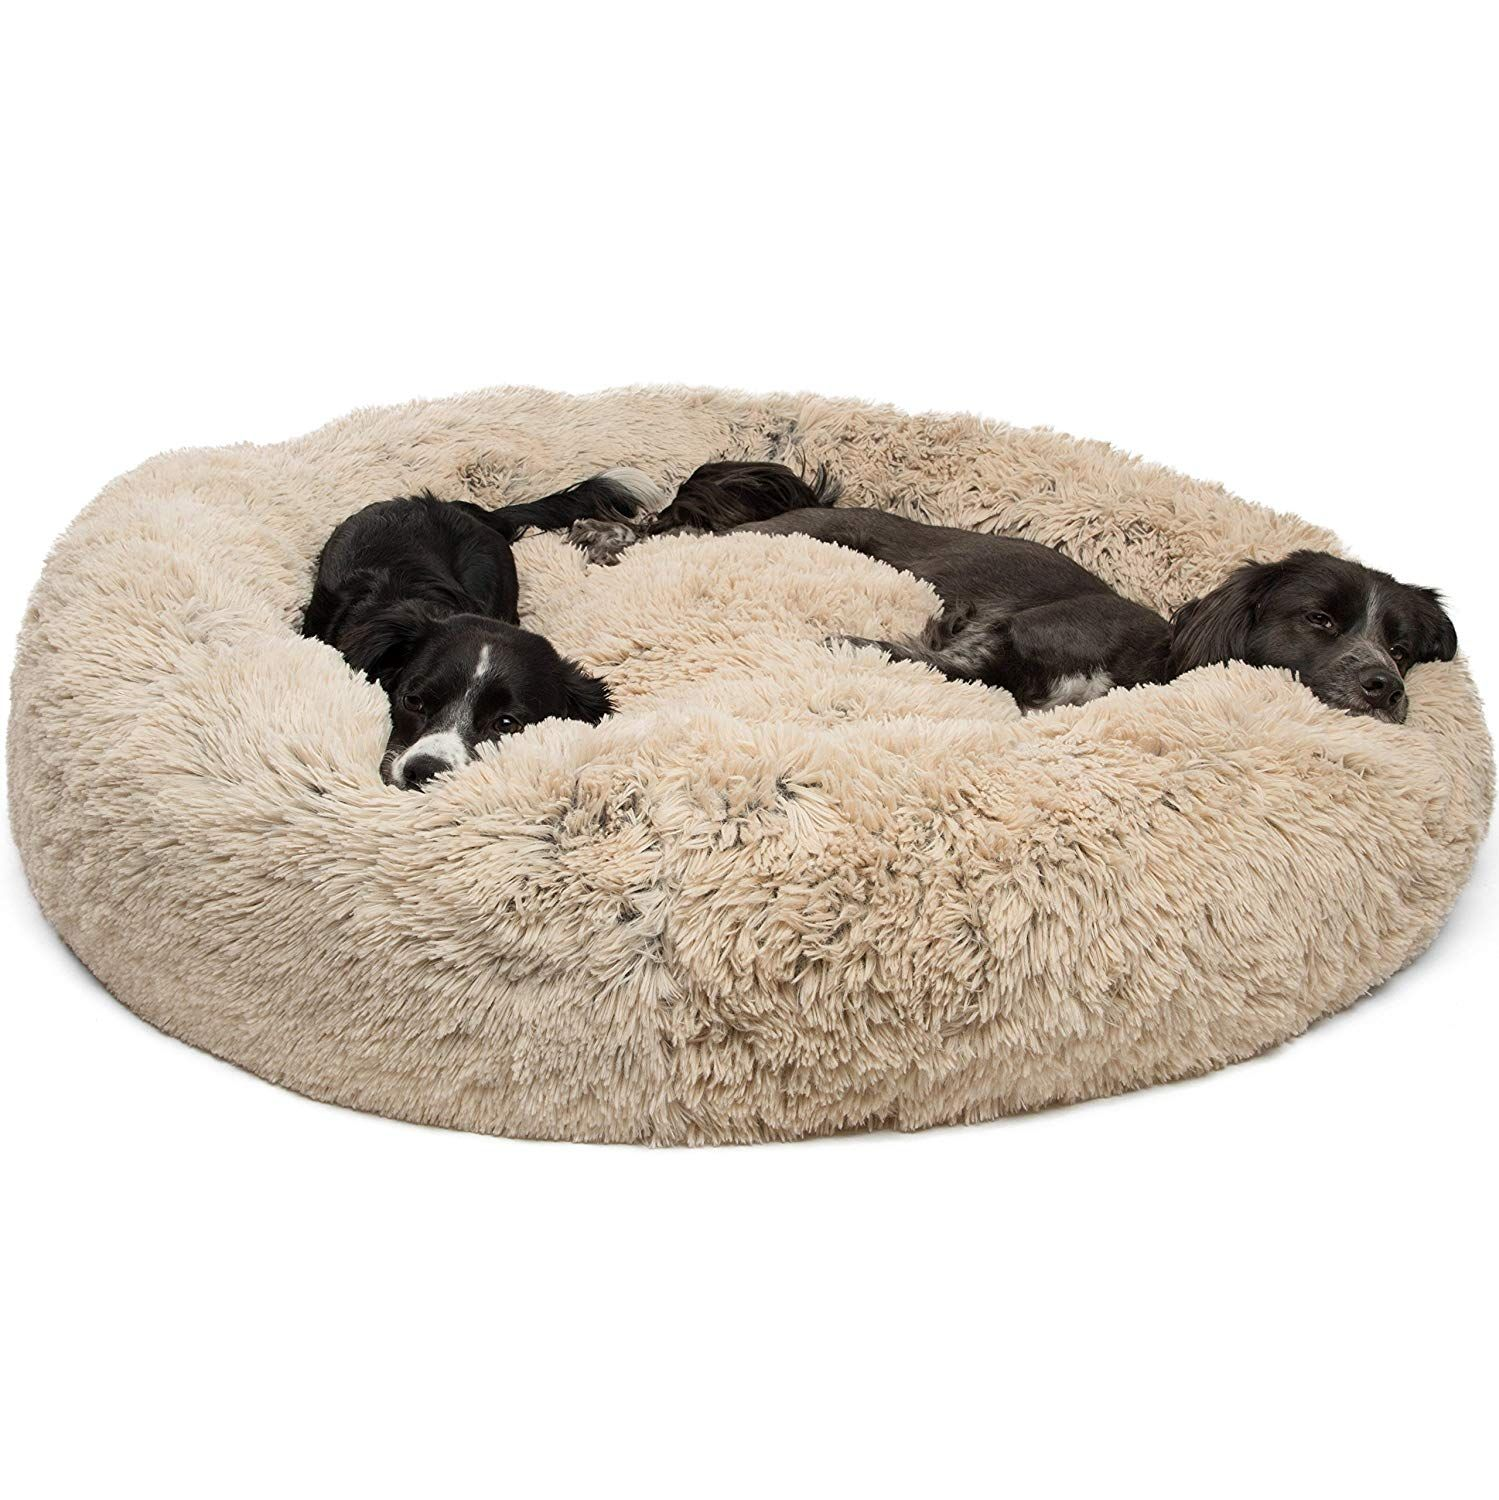 Best Dog Beds TopRated Dog Beds 2019 American Kennel